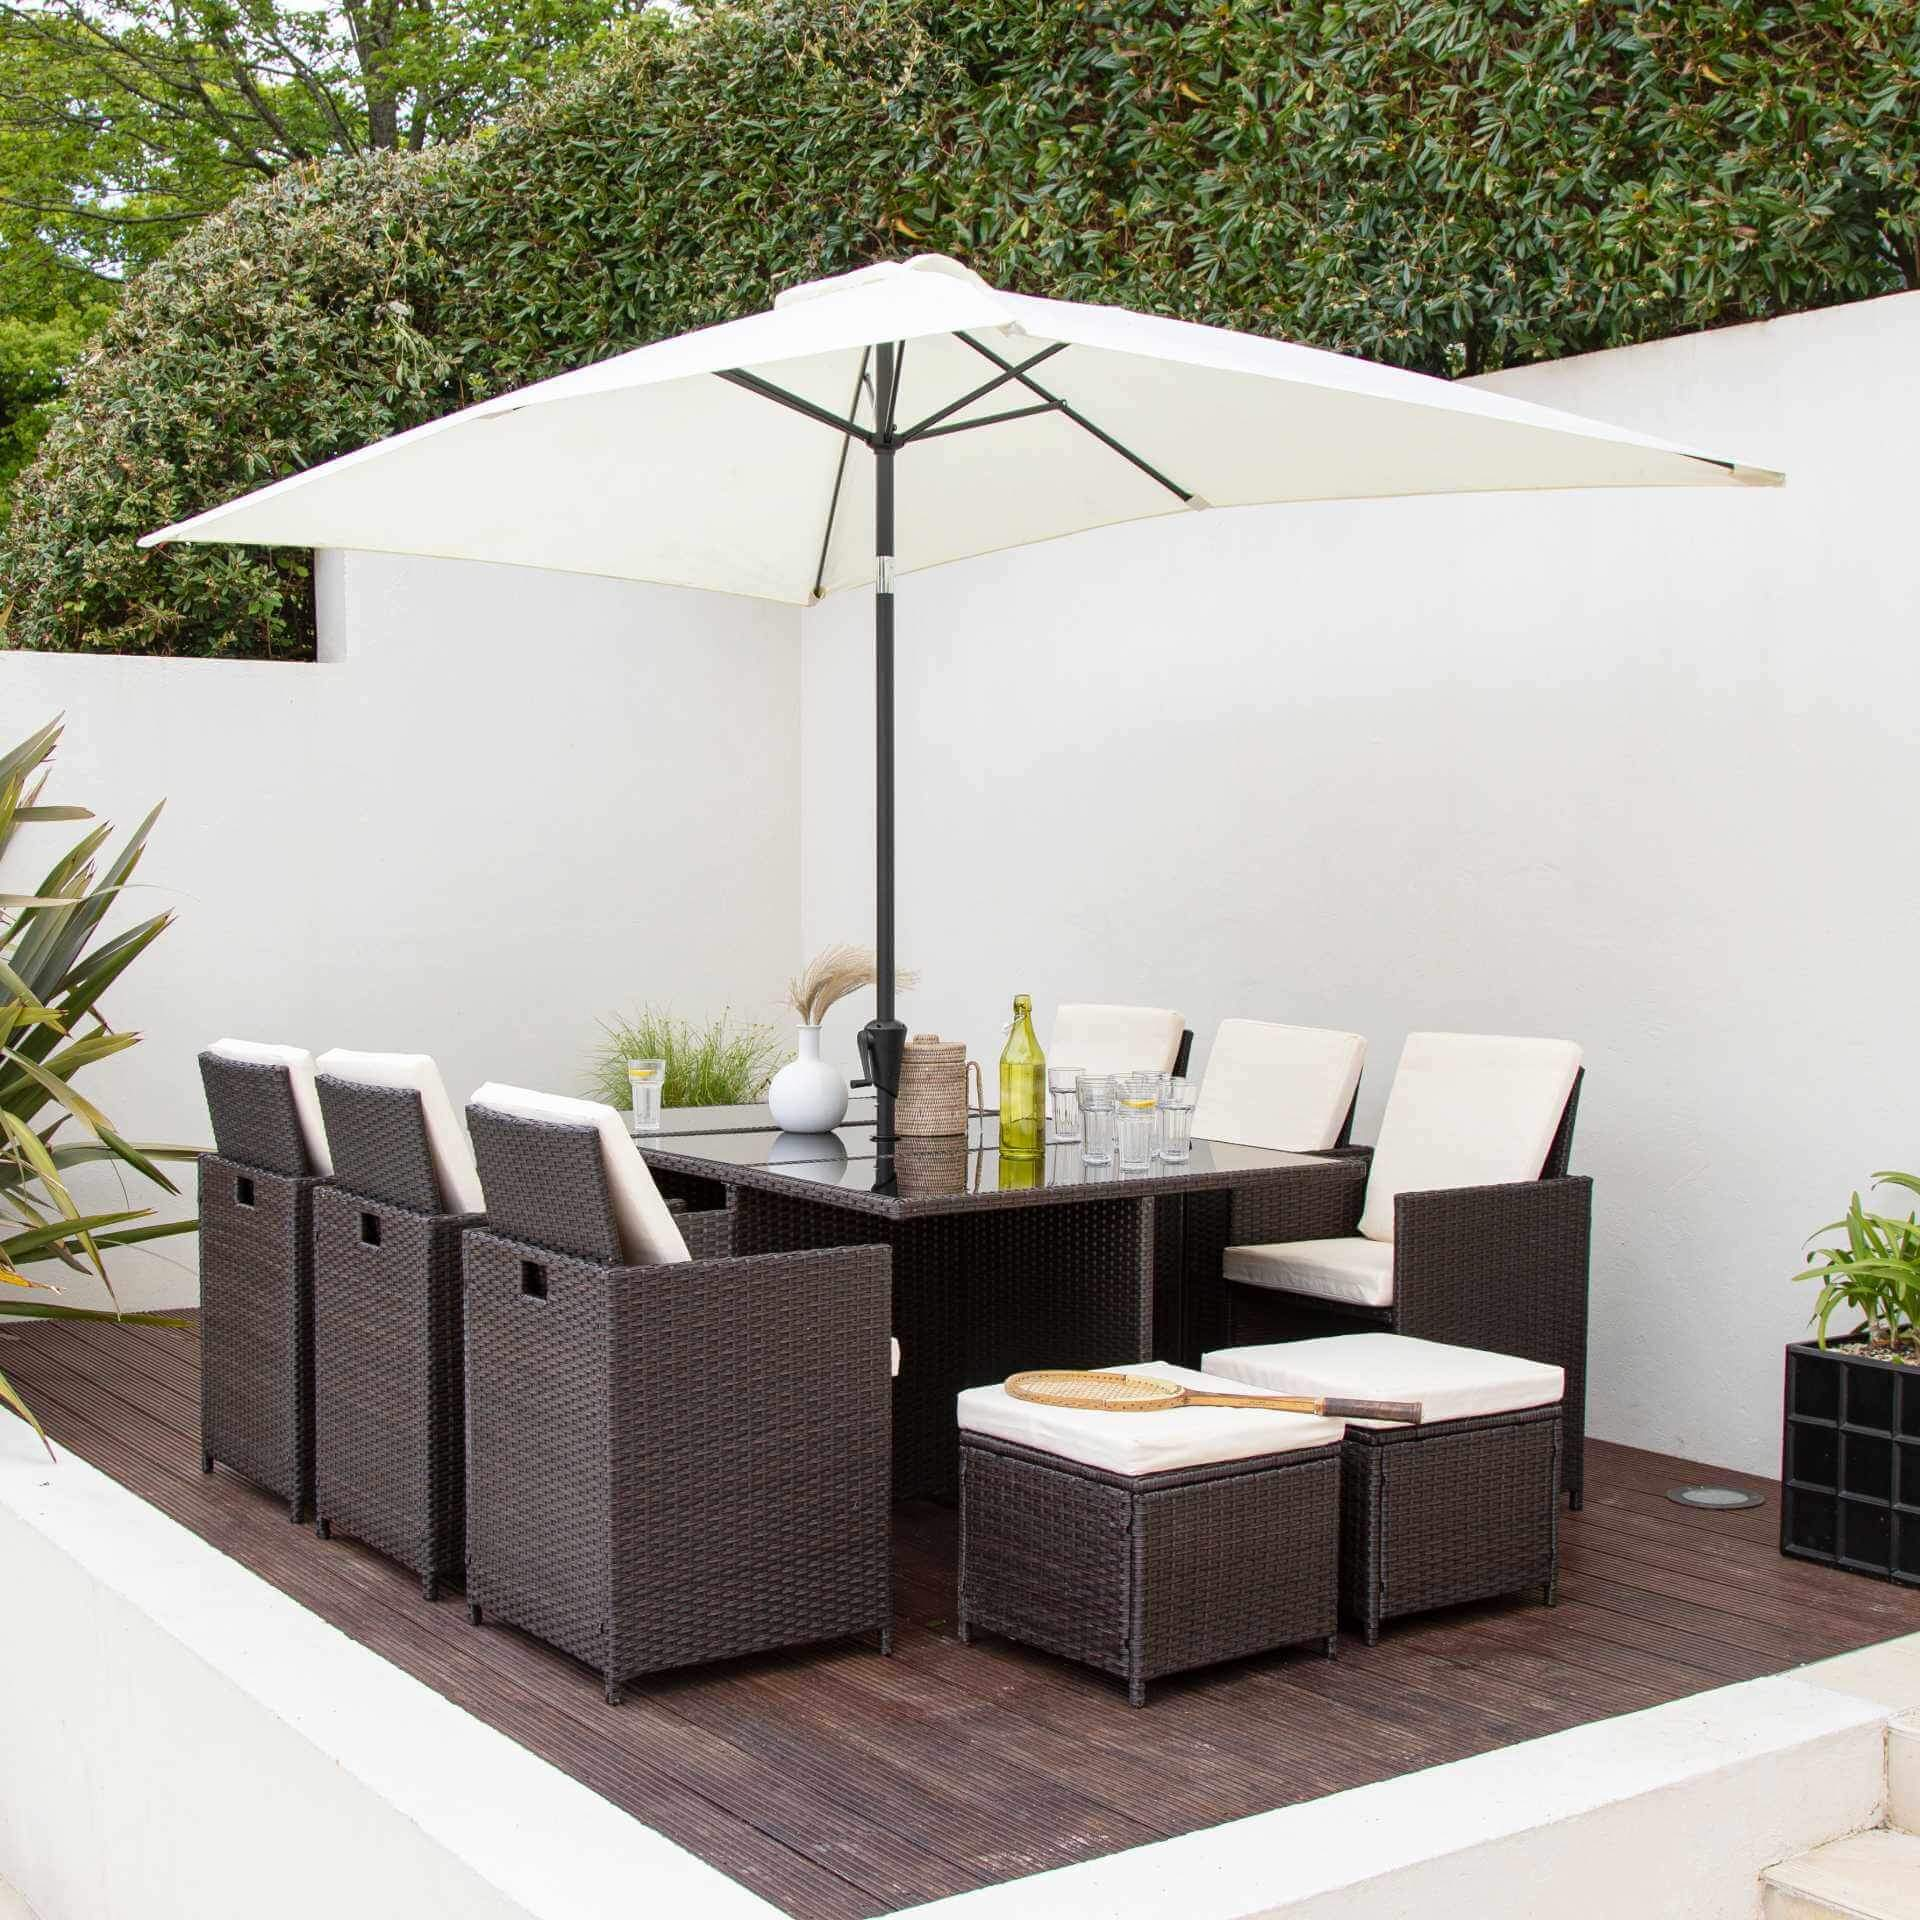 10 Seat Rattan Cube Outdoor Dining Set with Premium Parasol and Parasol Rain Cover - Mixed Brown Weave - Laura James